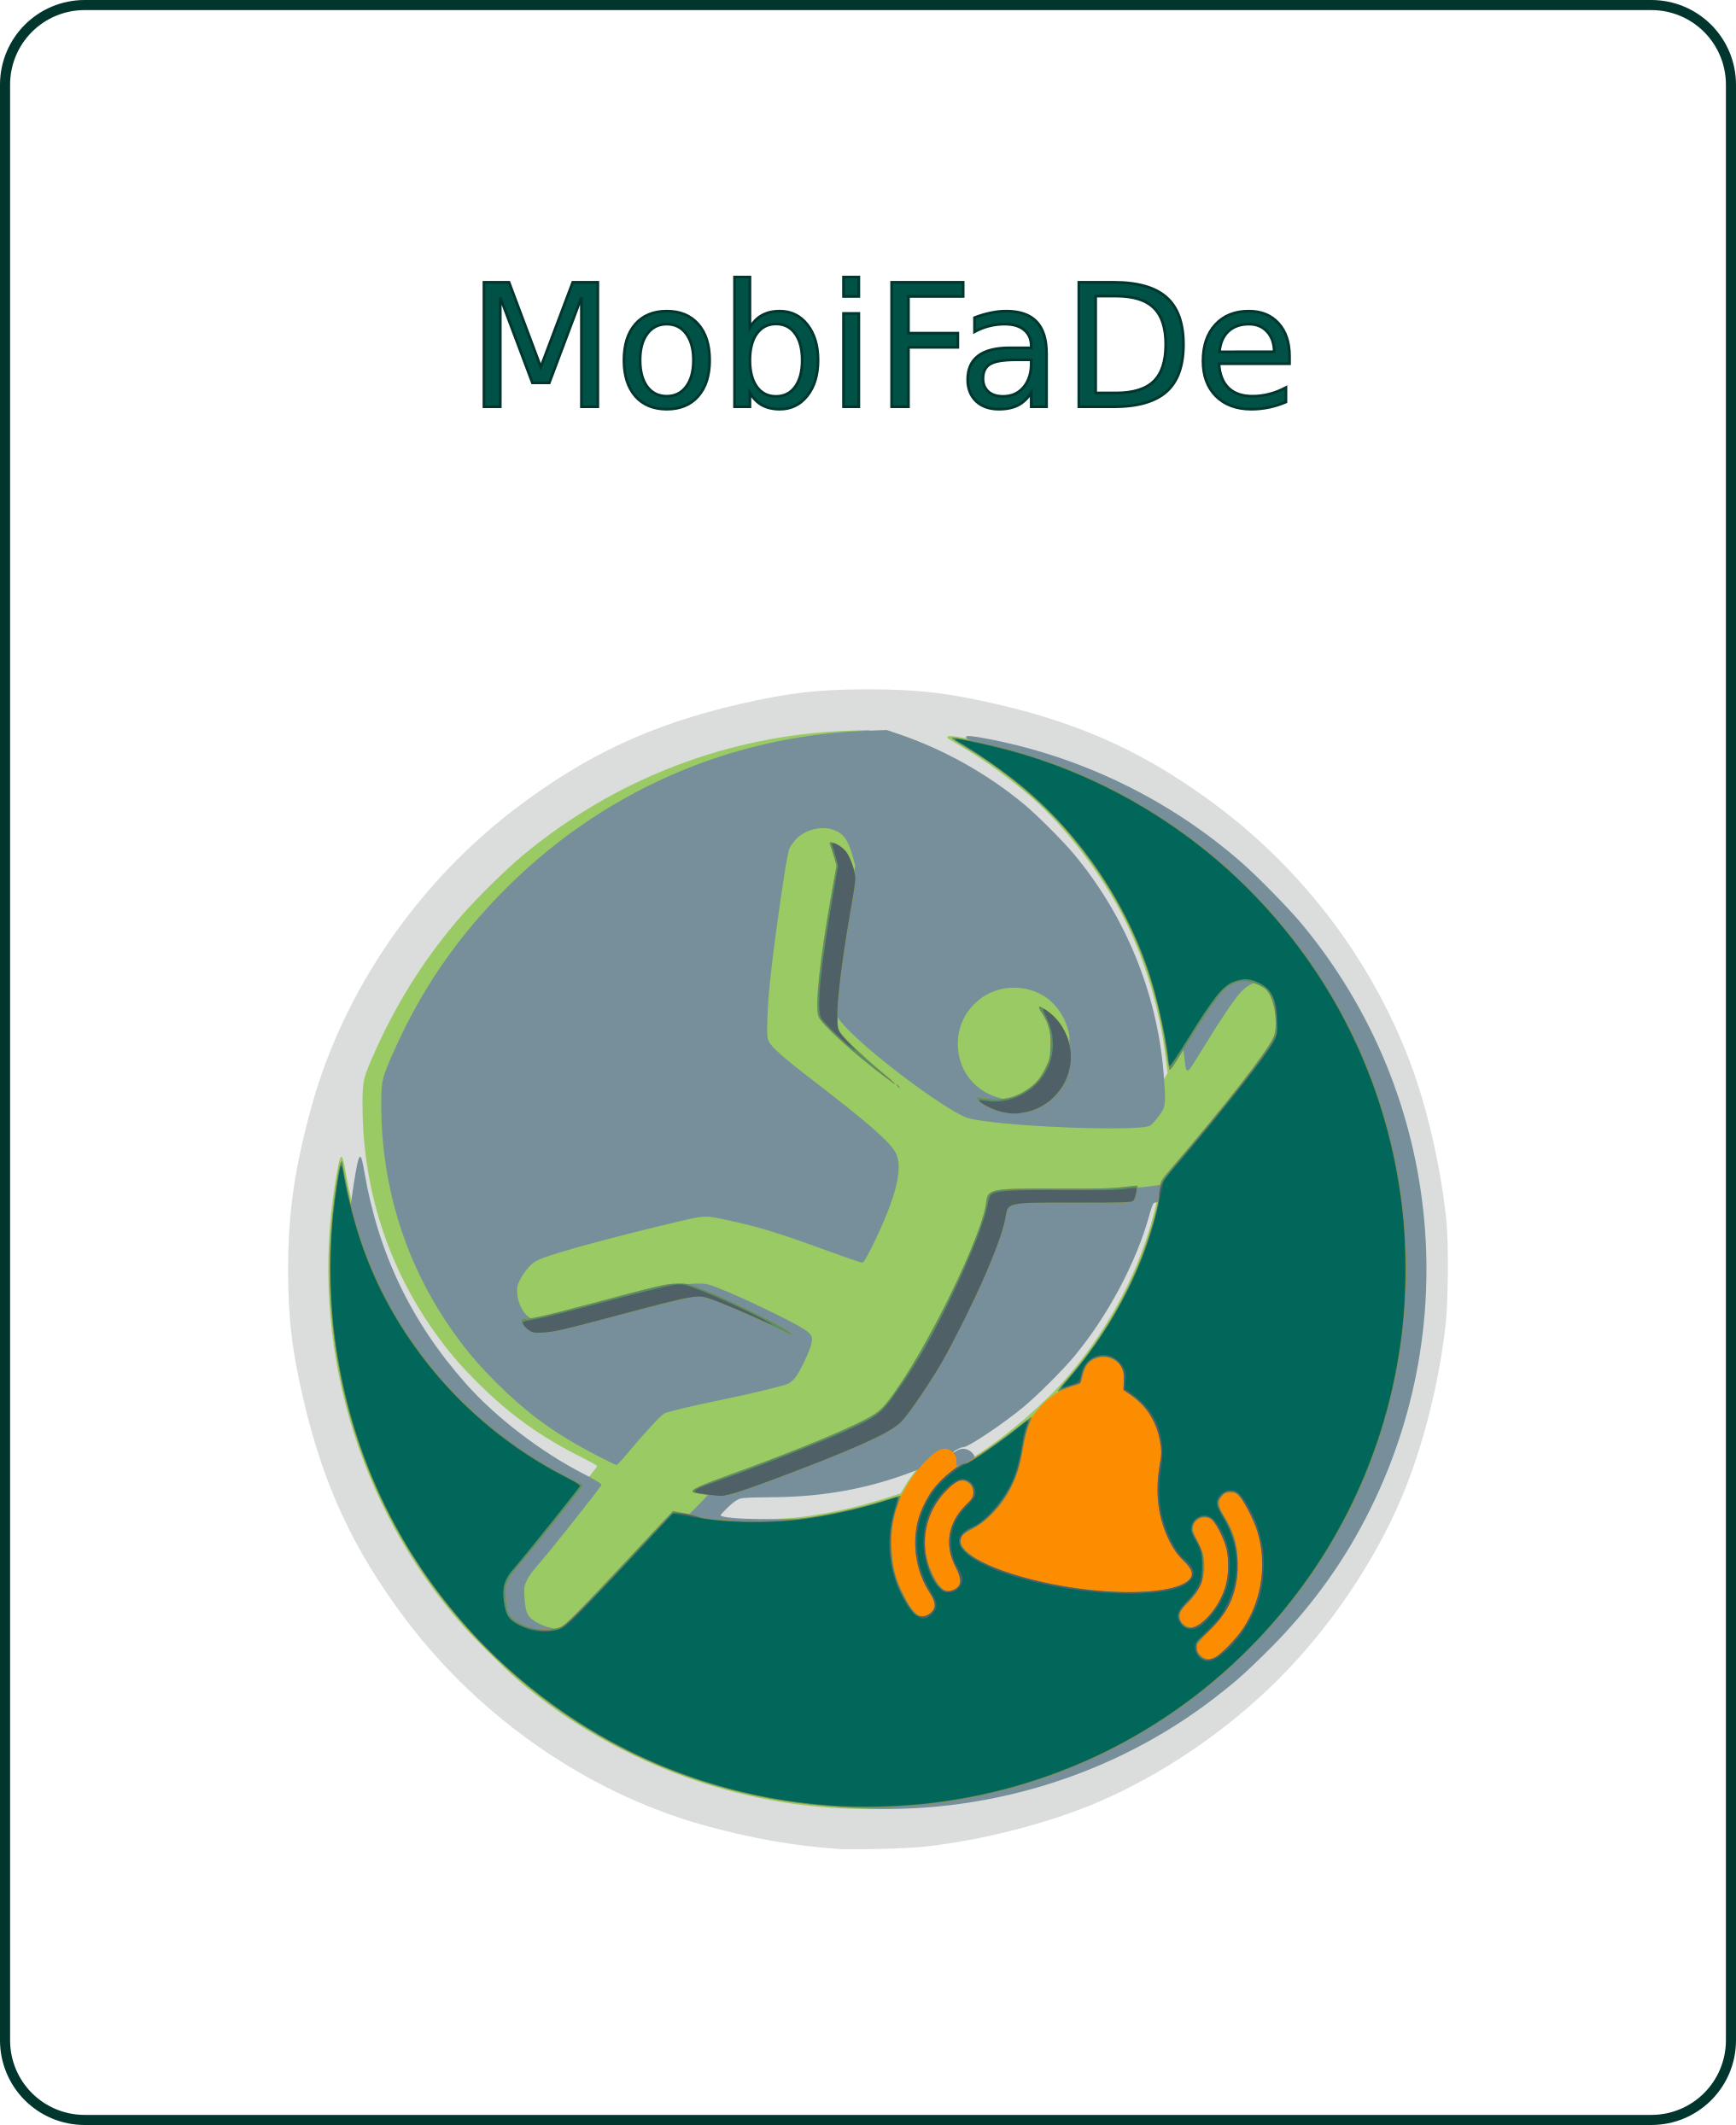 Project MobiFaDe